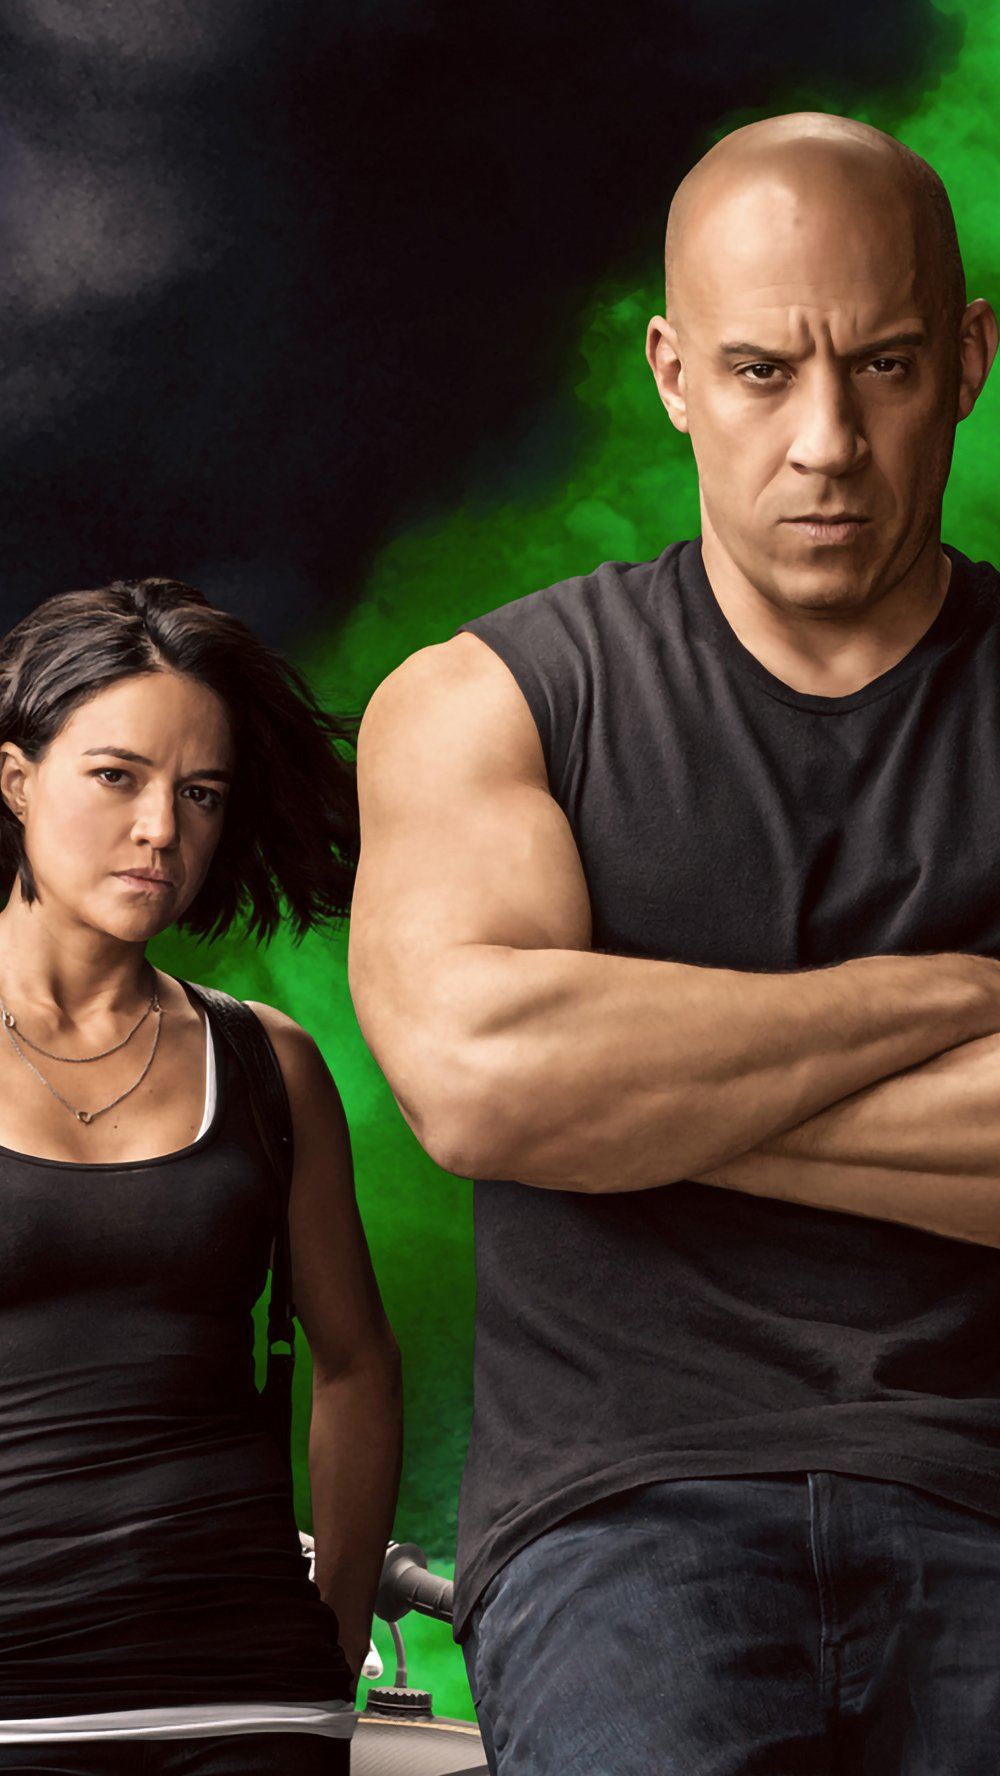 Wallpaper Characters from Fast and Furious 9 Vertical